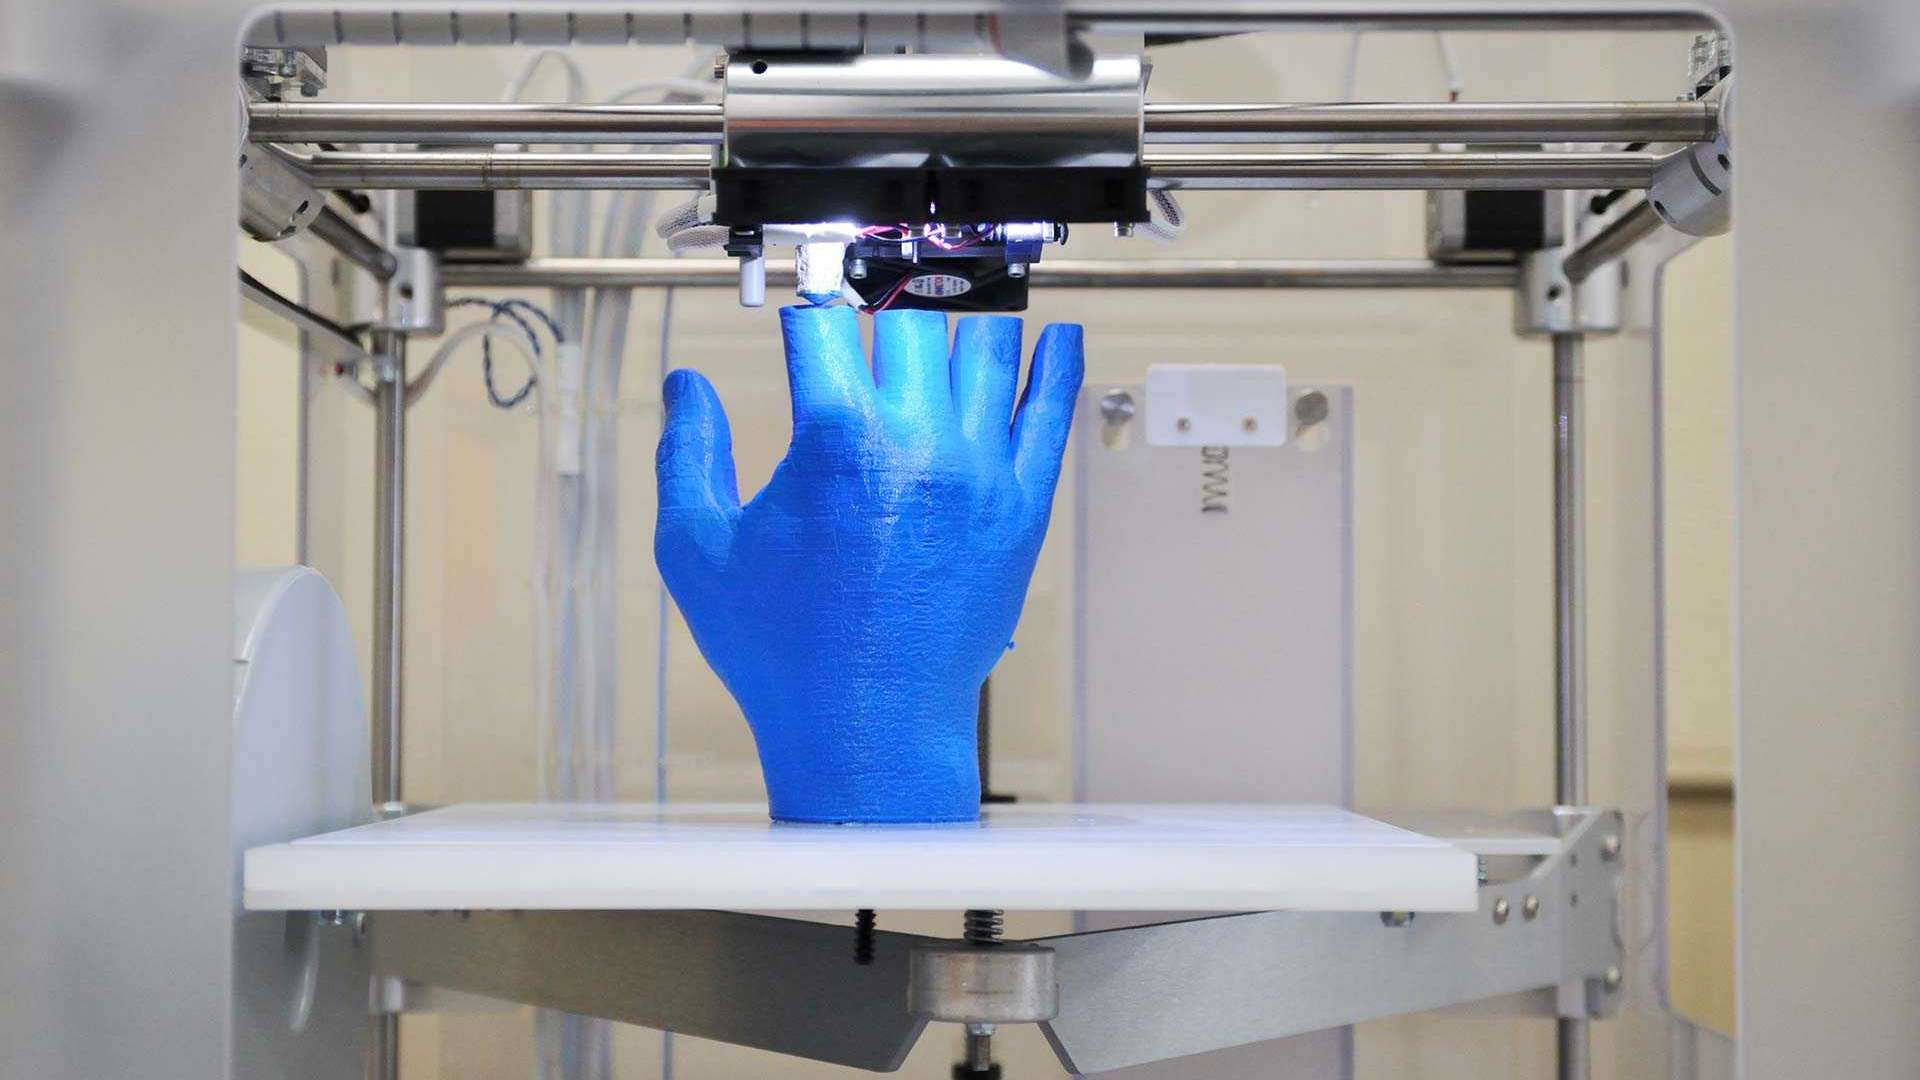 A 3D printed hand - not just for artists 3D printing could change manufacturing